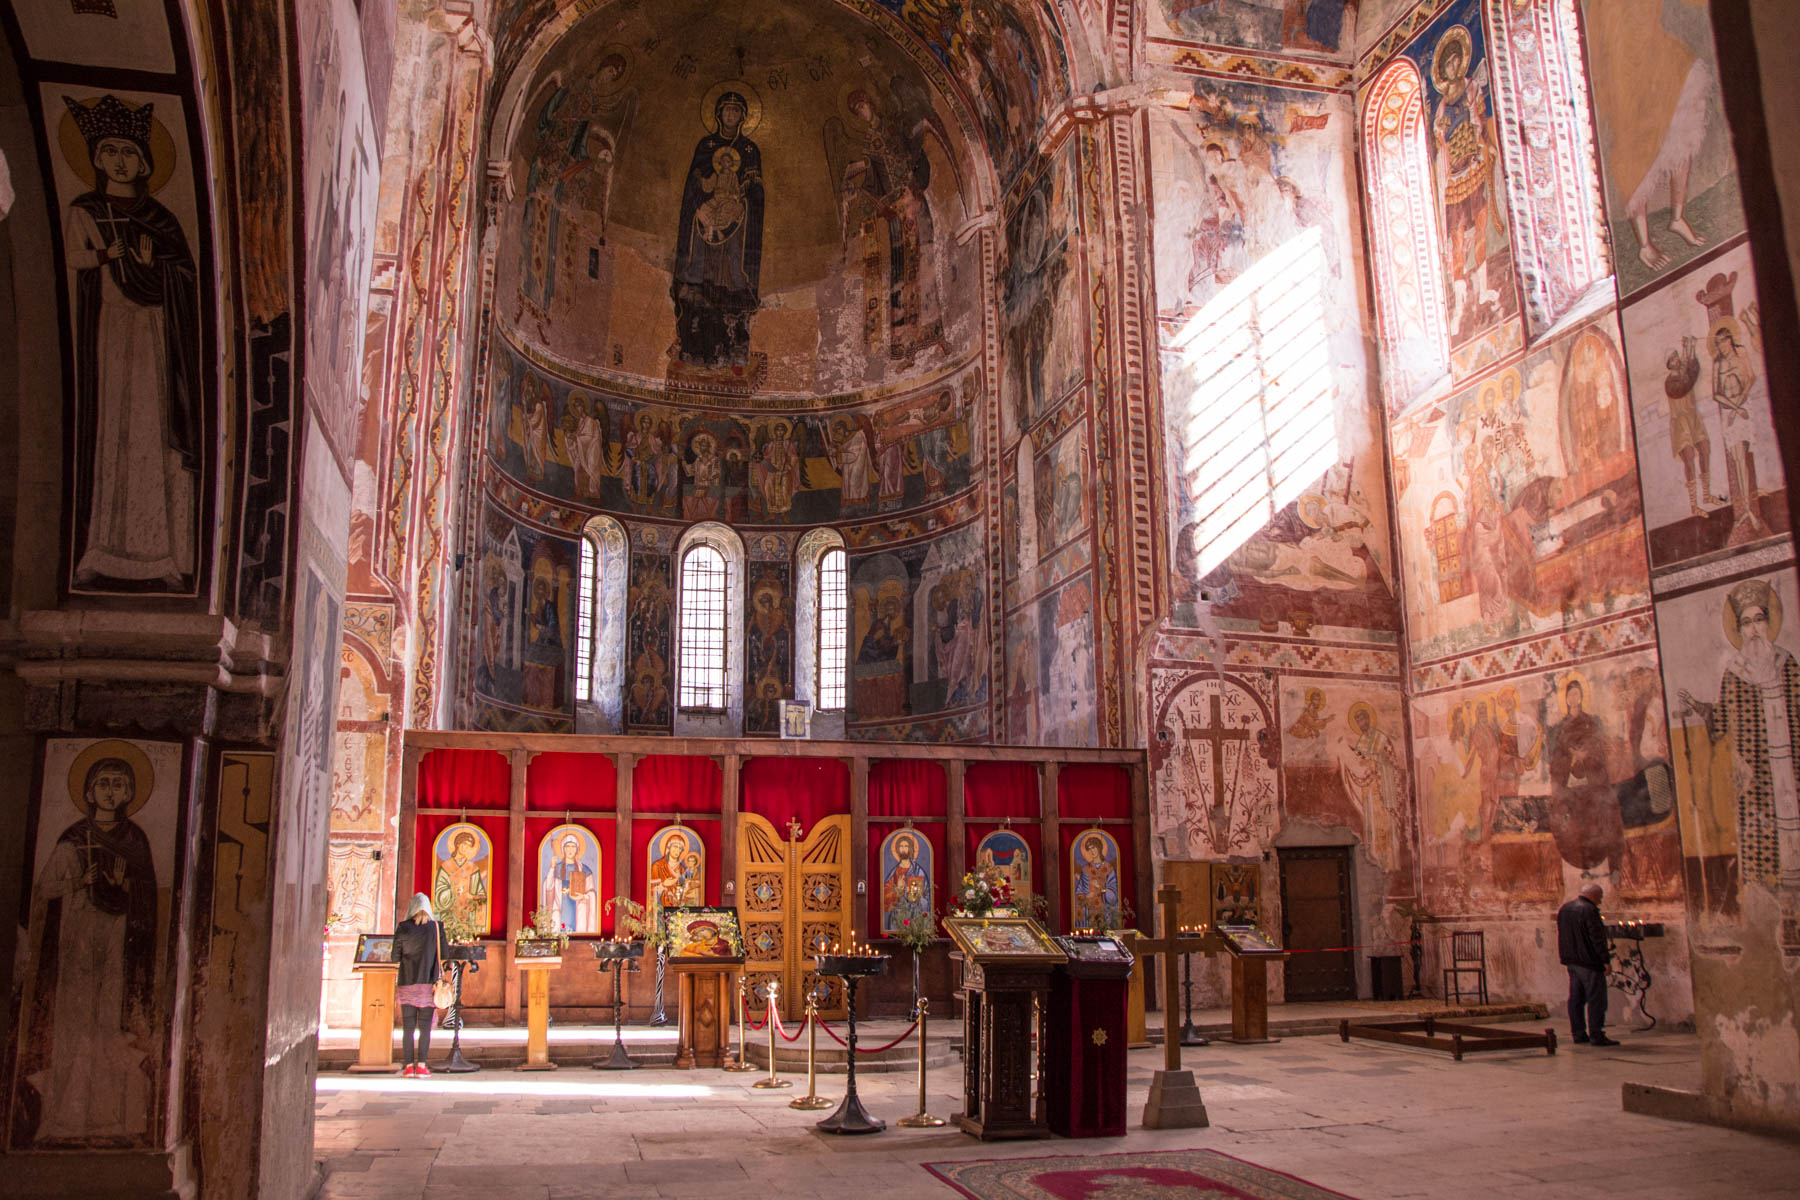 The interior of the stunning Gelati monastery in Kutaisi, Georgia - Lost With Purpose